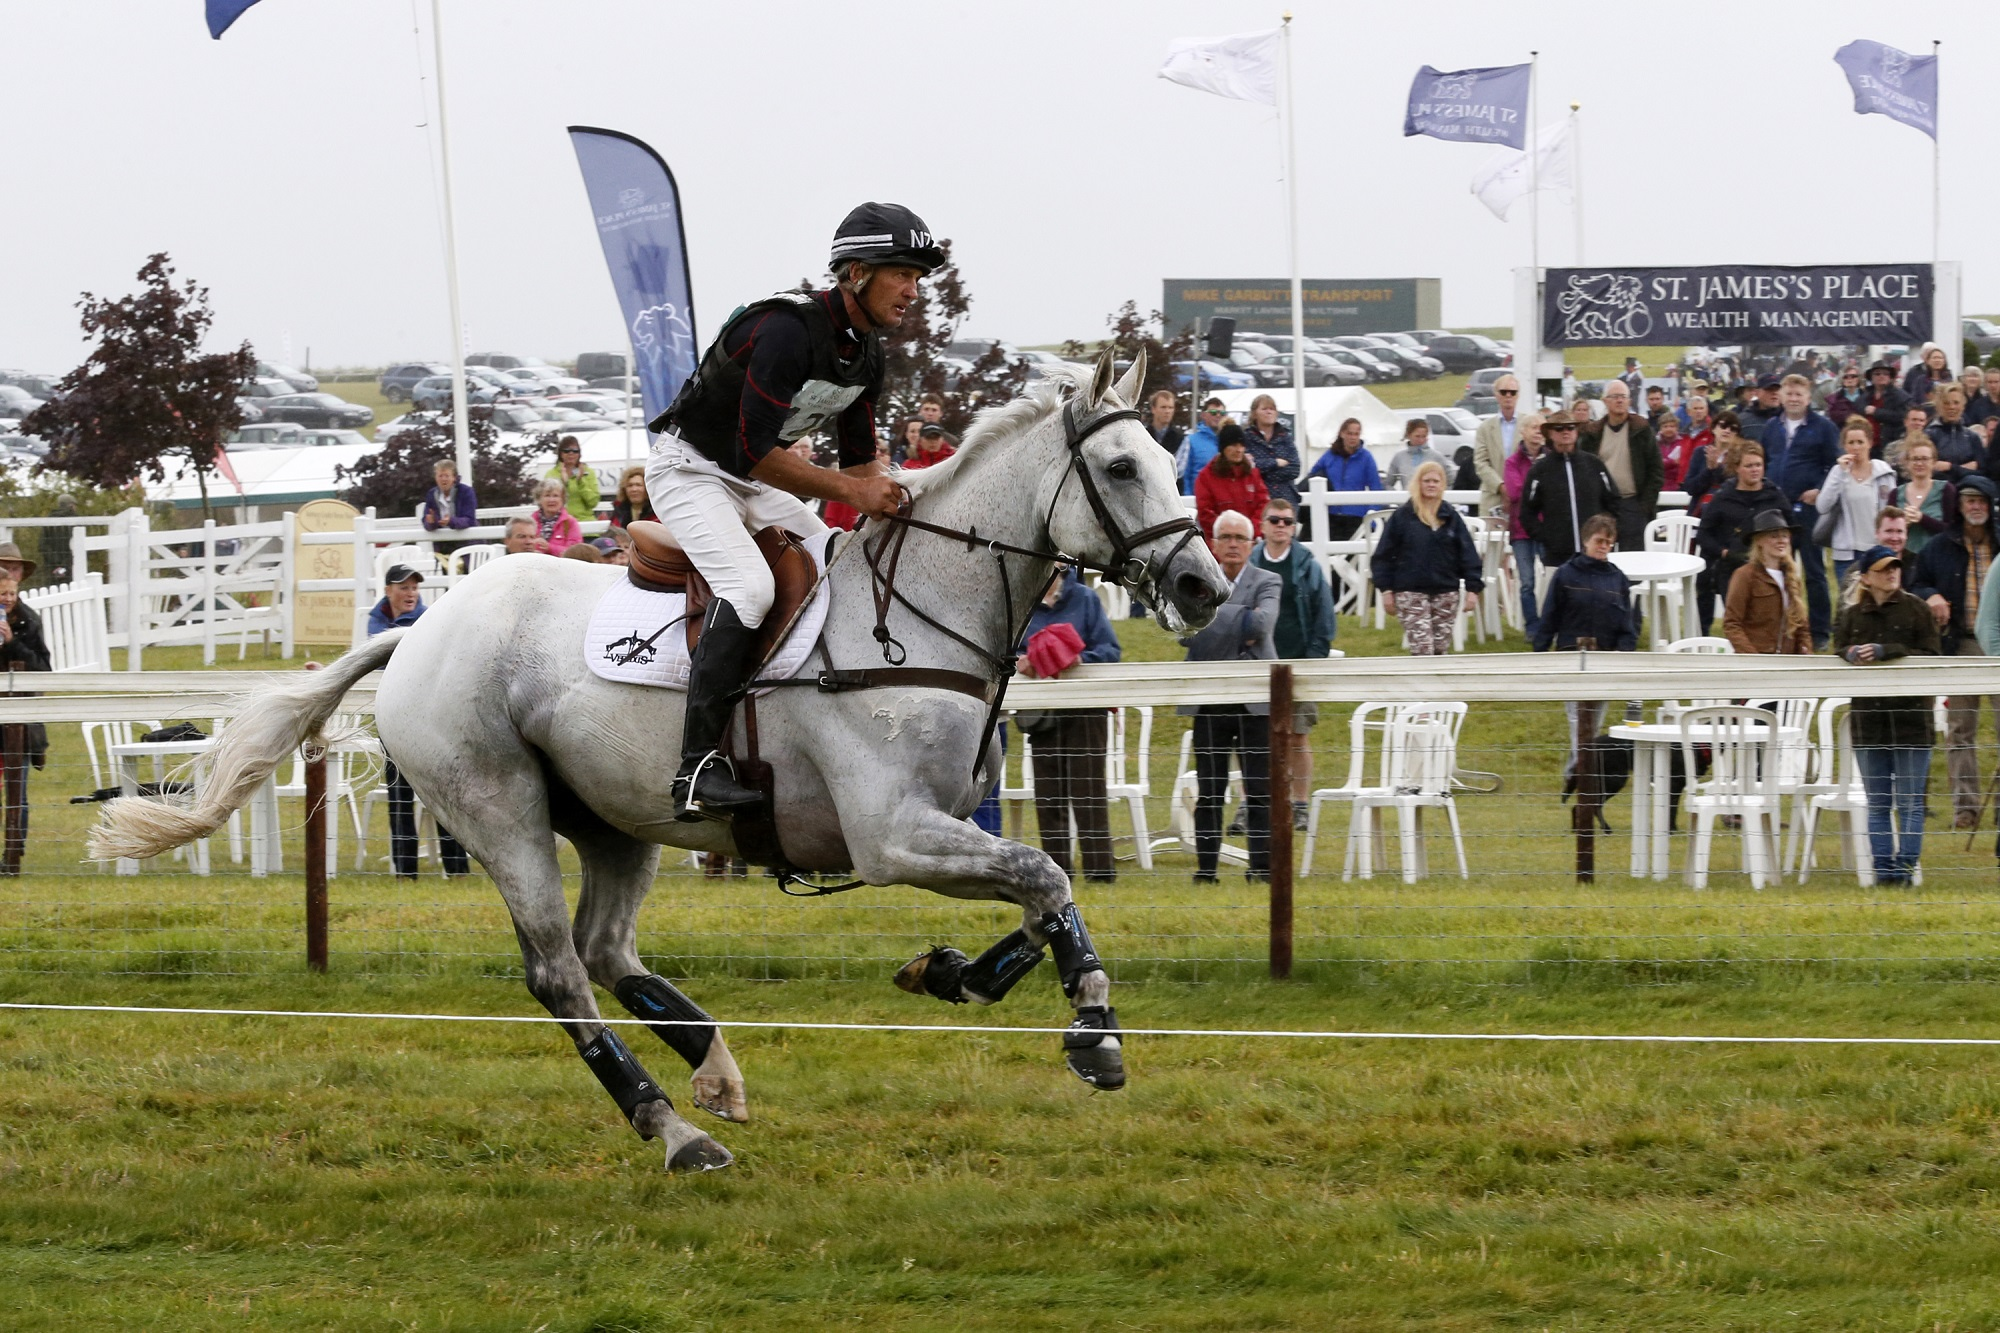 Andrew Nicholson in action at Barbury